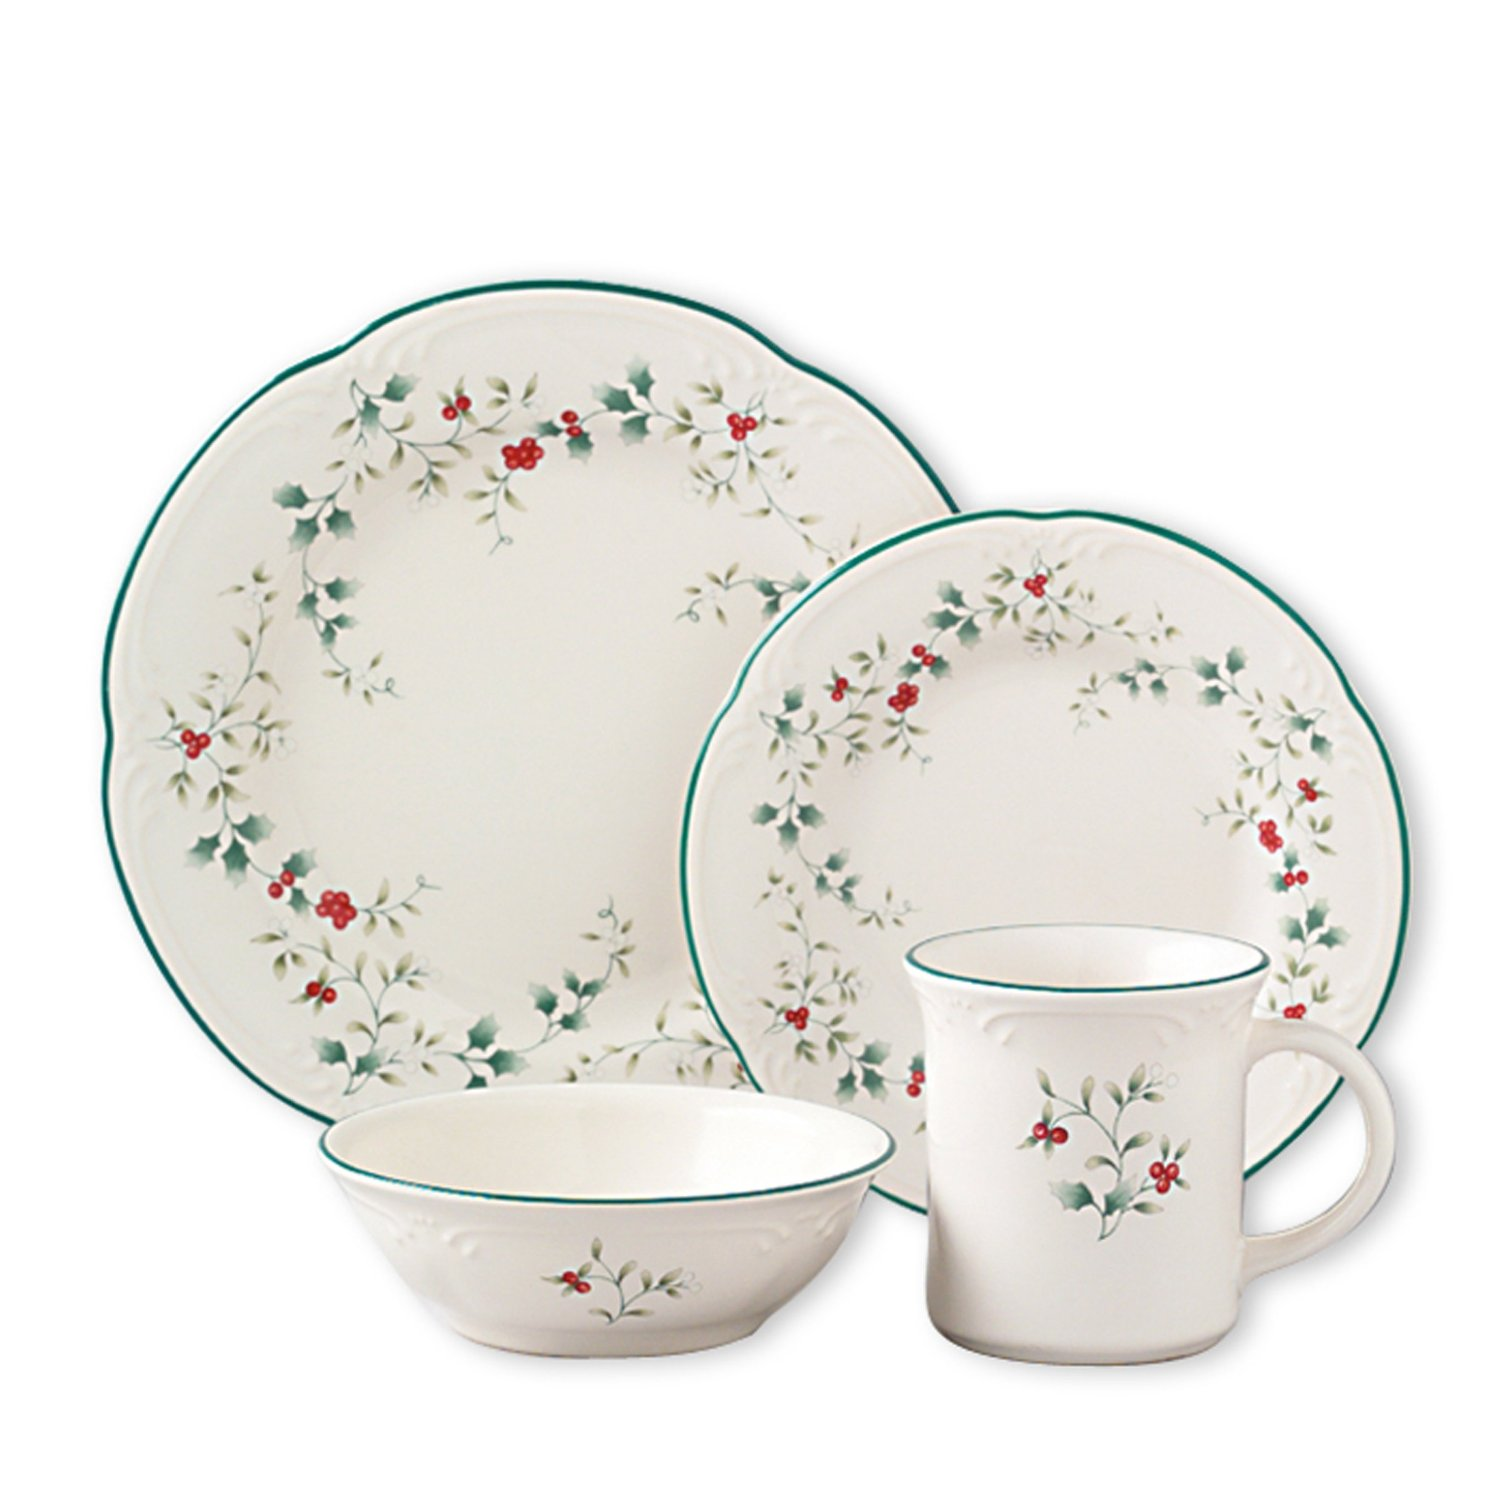 Pfaltzgraff Winterberry Dinnerware Set u2013 Microwave and Dishwasher Safe Stoneware Matching Serving Dishes Flatware  sc 1 st  TopProducts.com : christmas stoneware dinnerware sets - pezcame.com